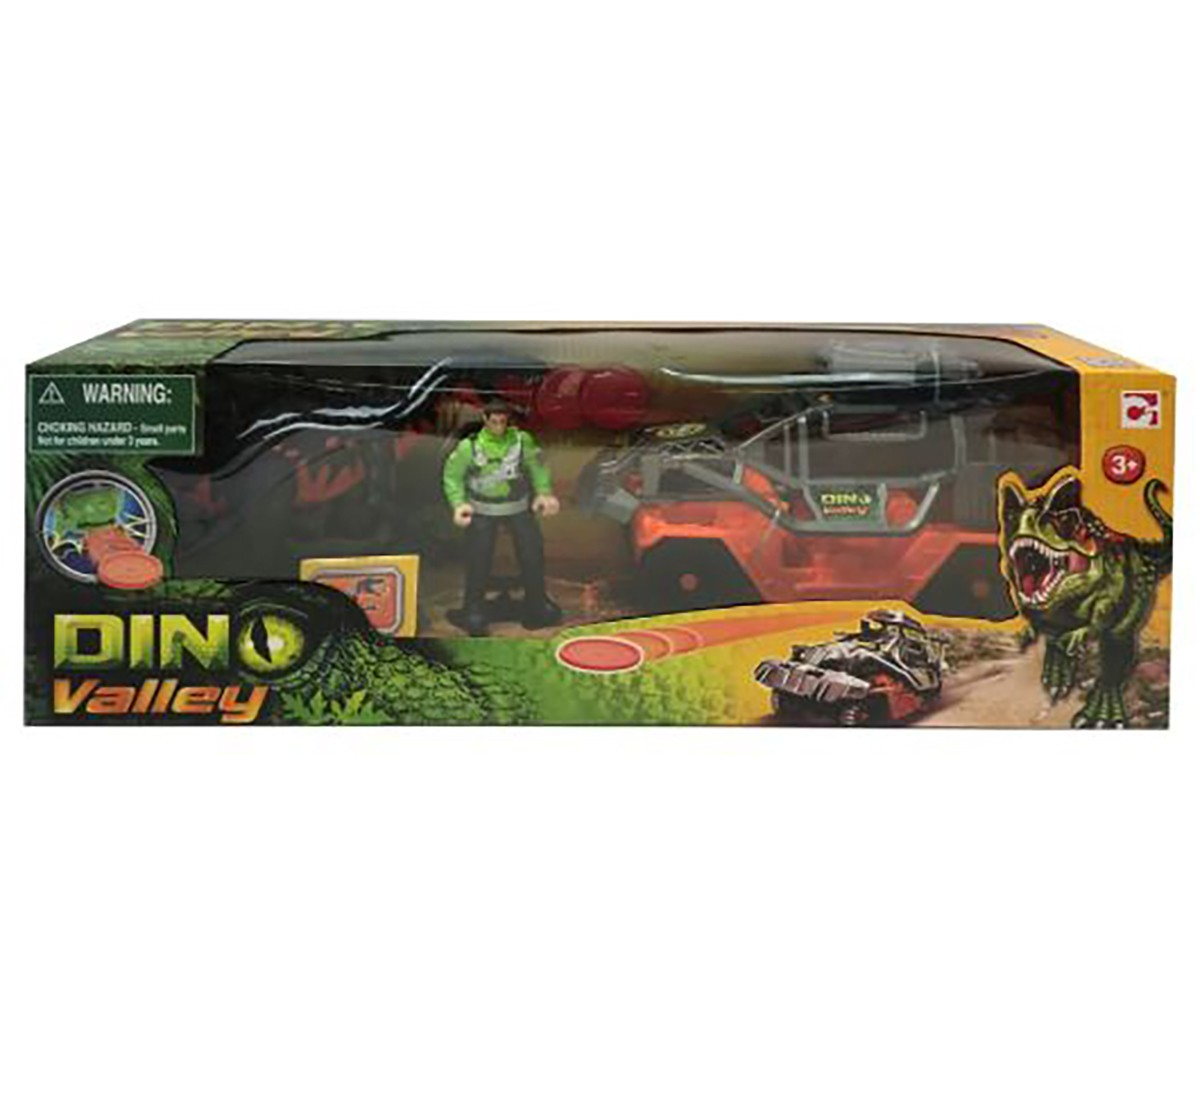 Hamleys Dino Valley Dinosaur Catch Vehicle Playset Action Figure Play Sets for Kids age 3Y+